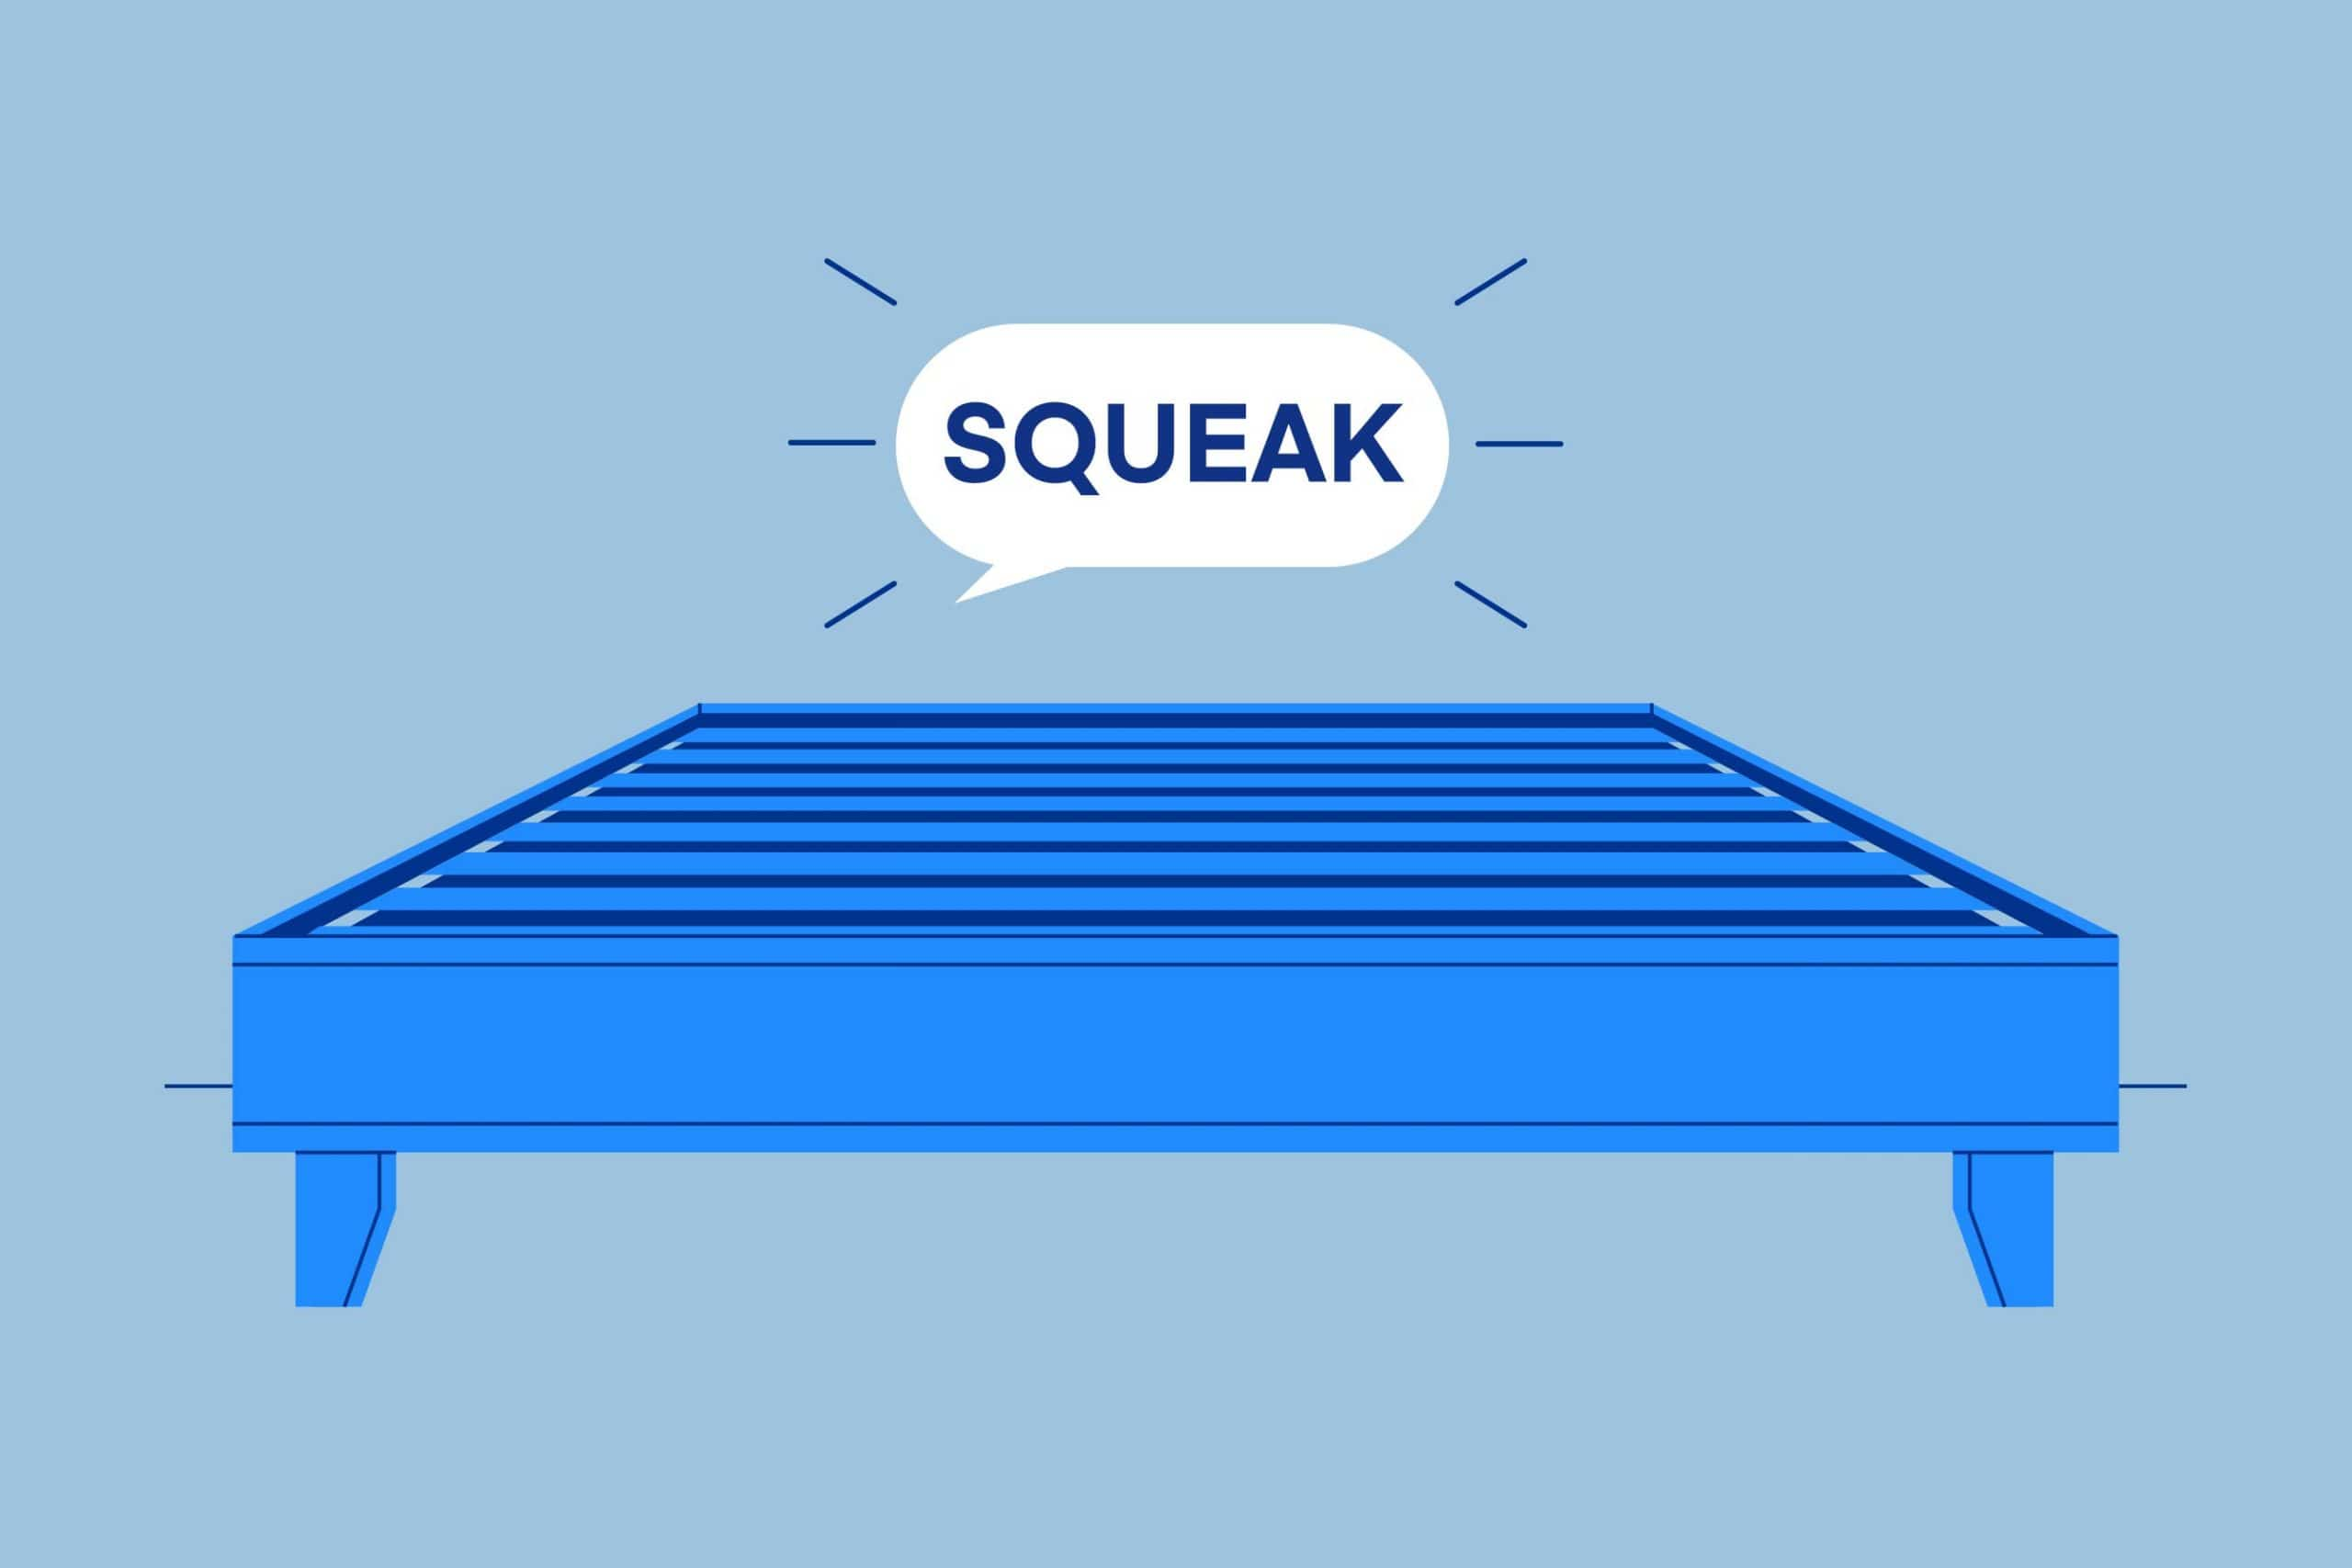 How to Fix a Squeaky Bed in 5 Steps